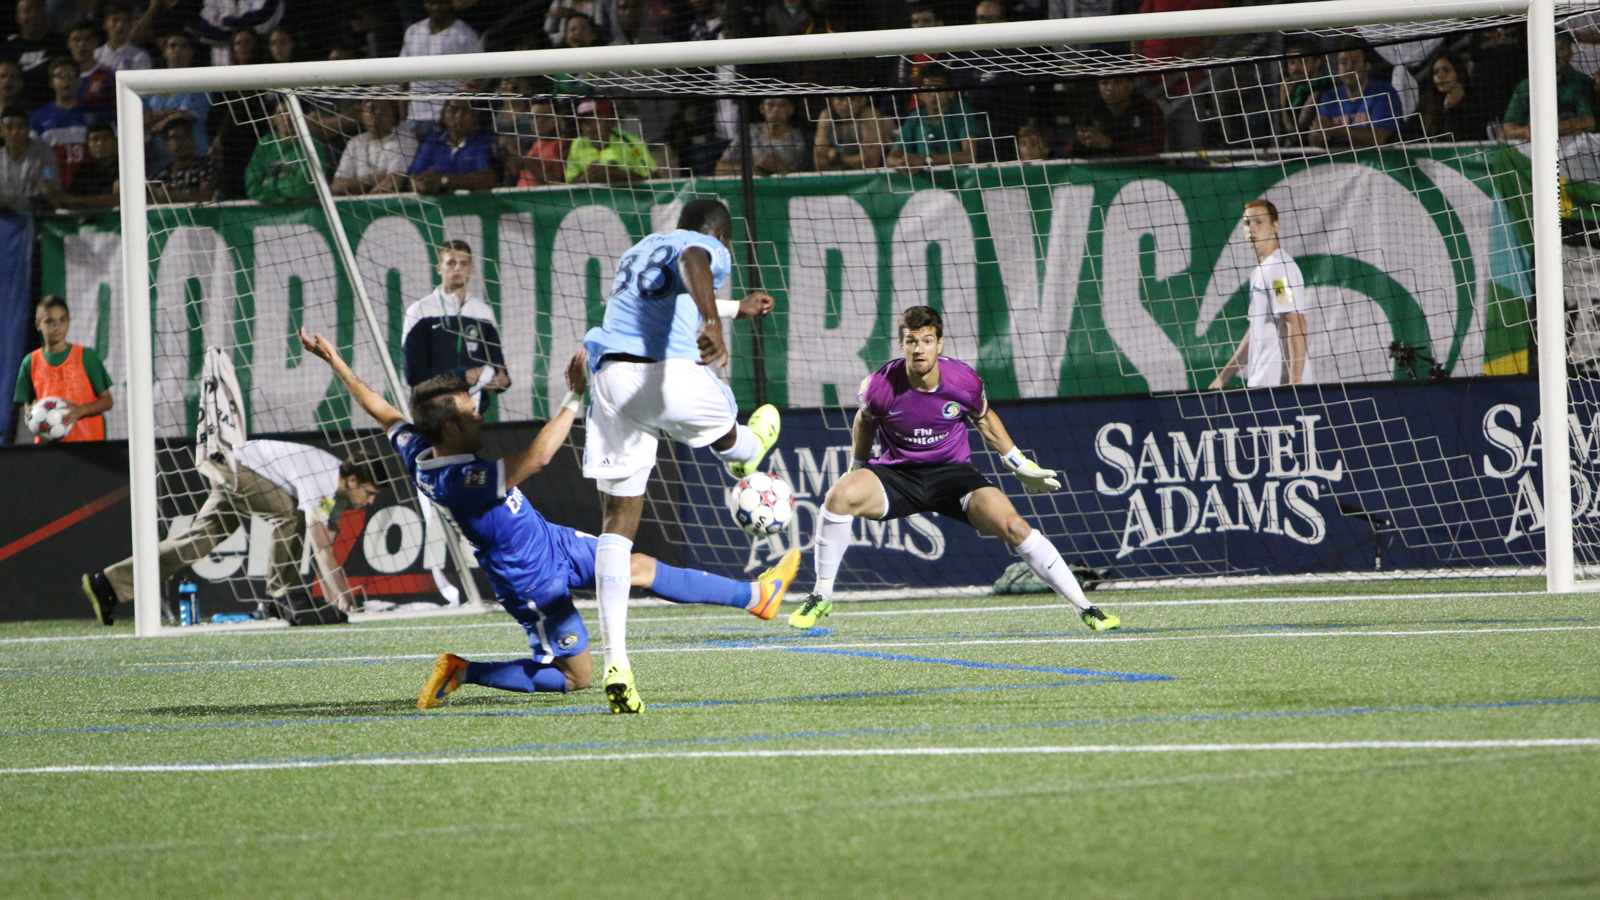 In the second half of their U.S. Open Cup fourth-round match, NYCFC midfielder Kwadwo Poku (88) fires a shot toward Cosmos goalkeeper Jimmy Maurer (1). Maurer was unable to save it, giving Poku his second goal of the game